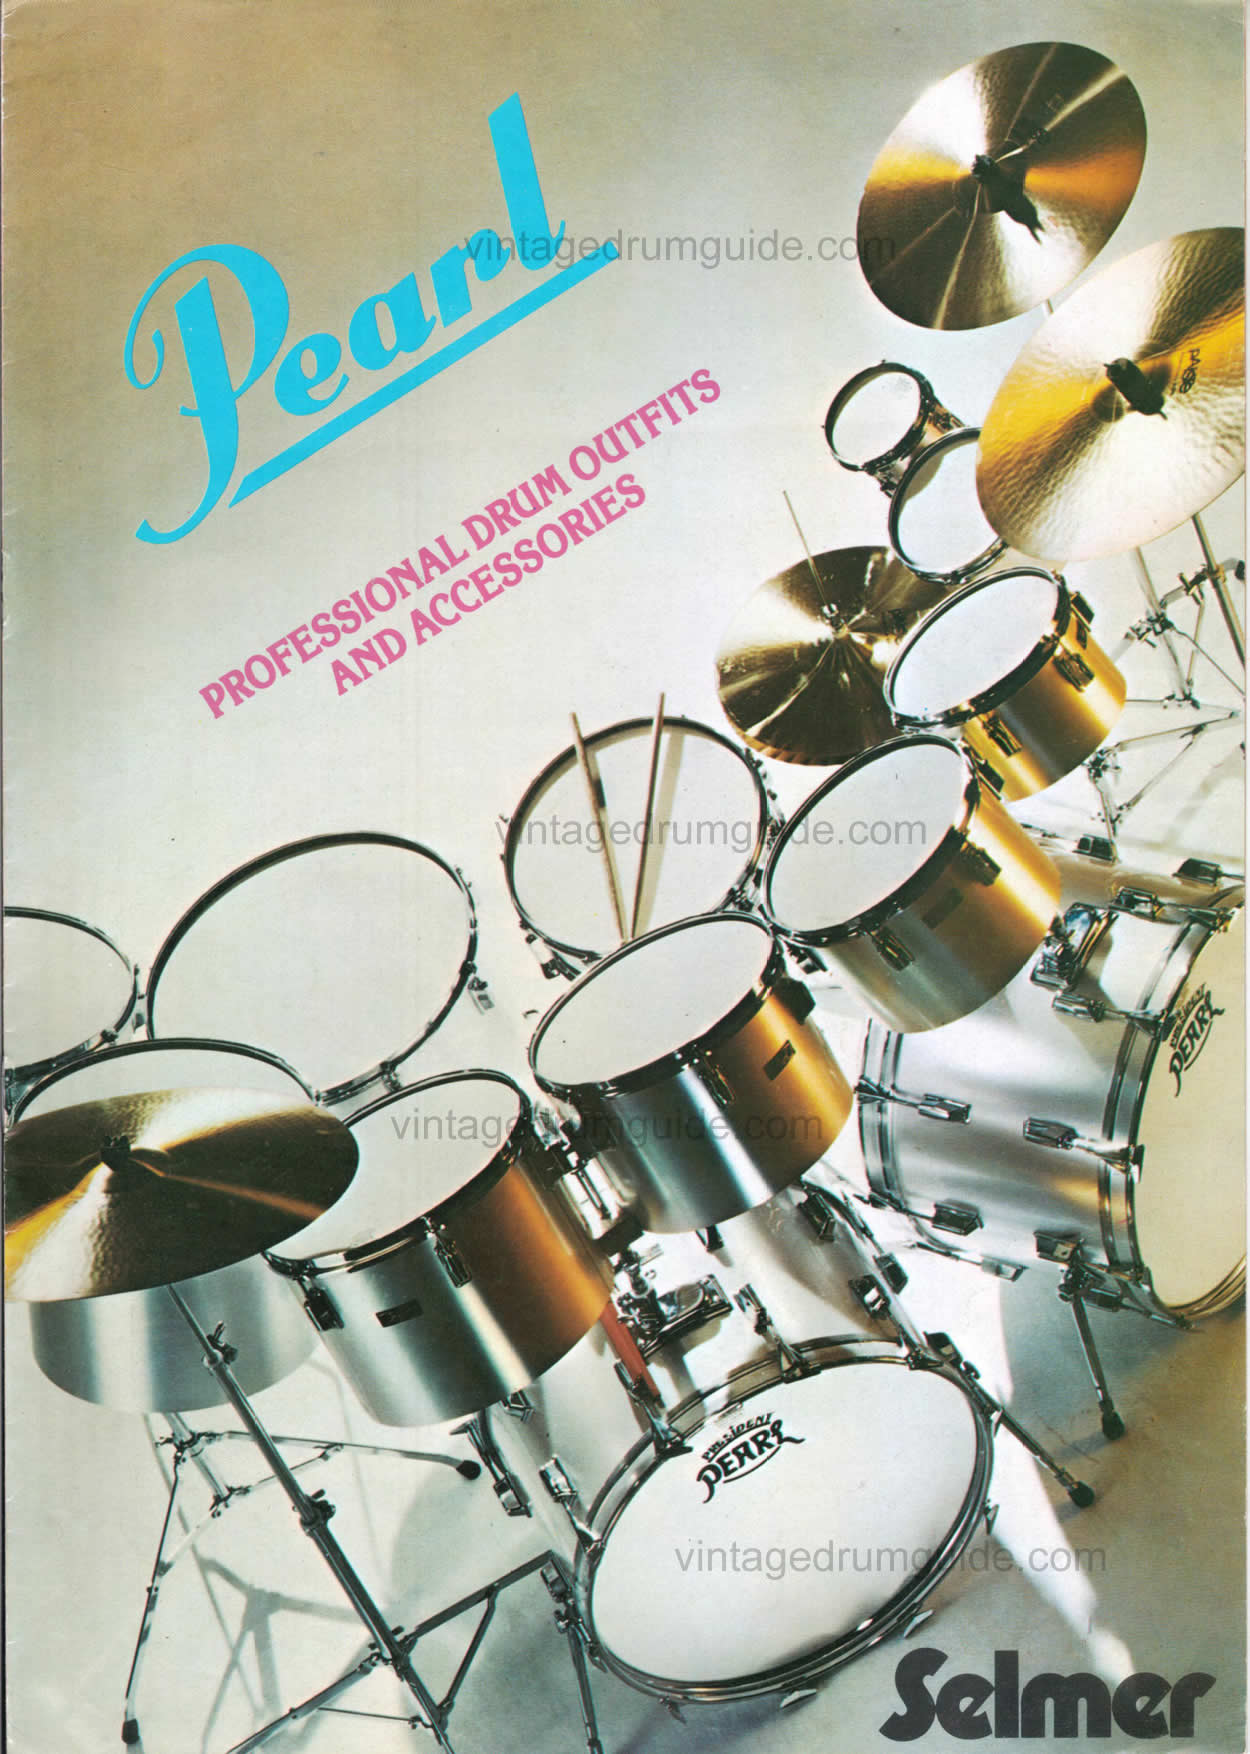 1970 Pearl drum catalog